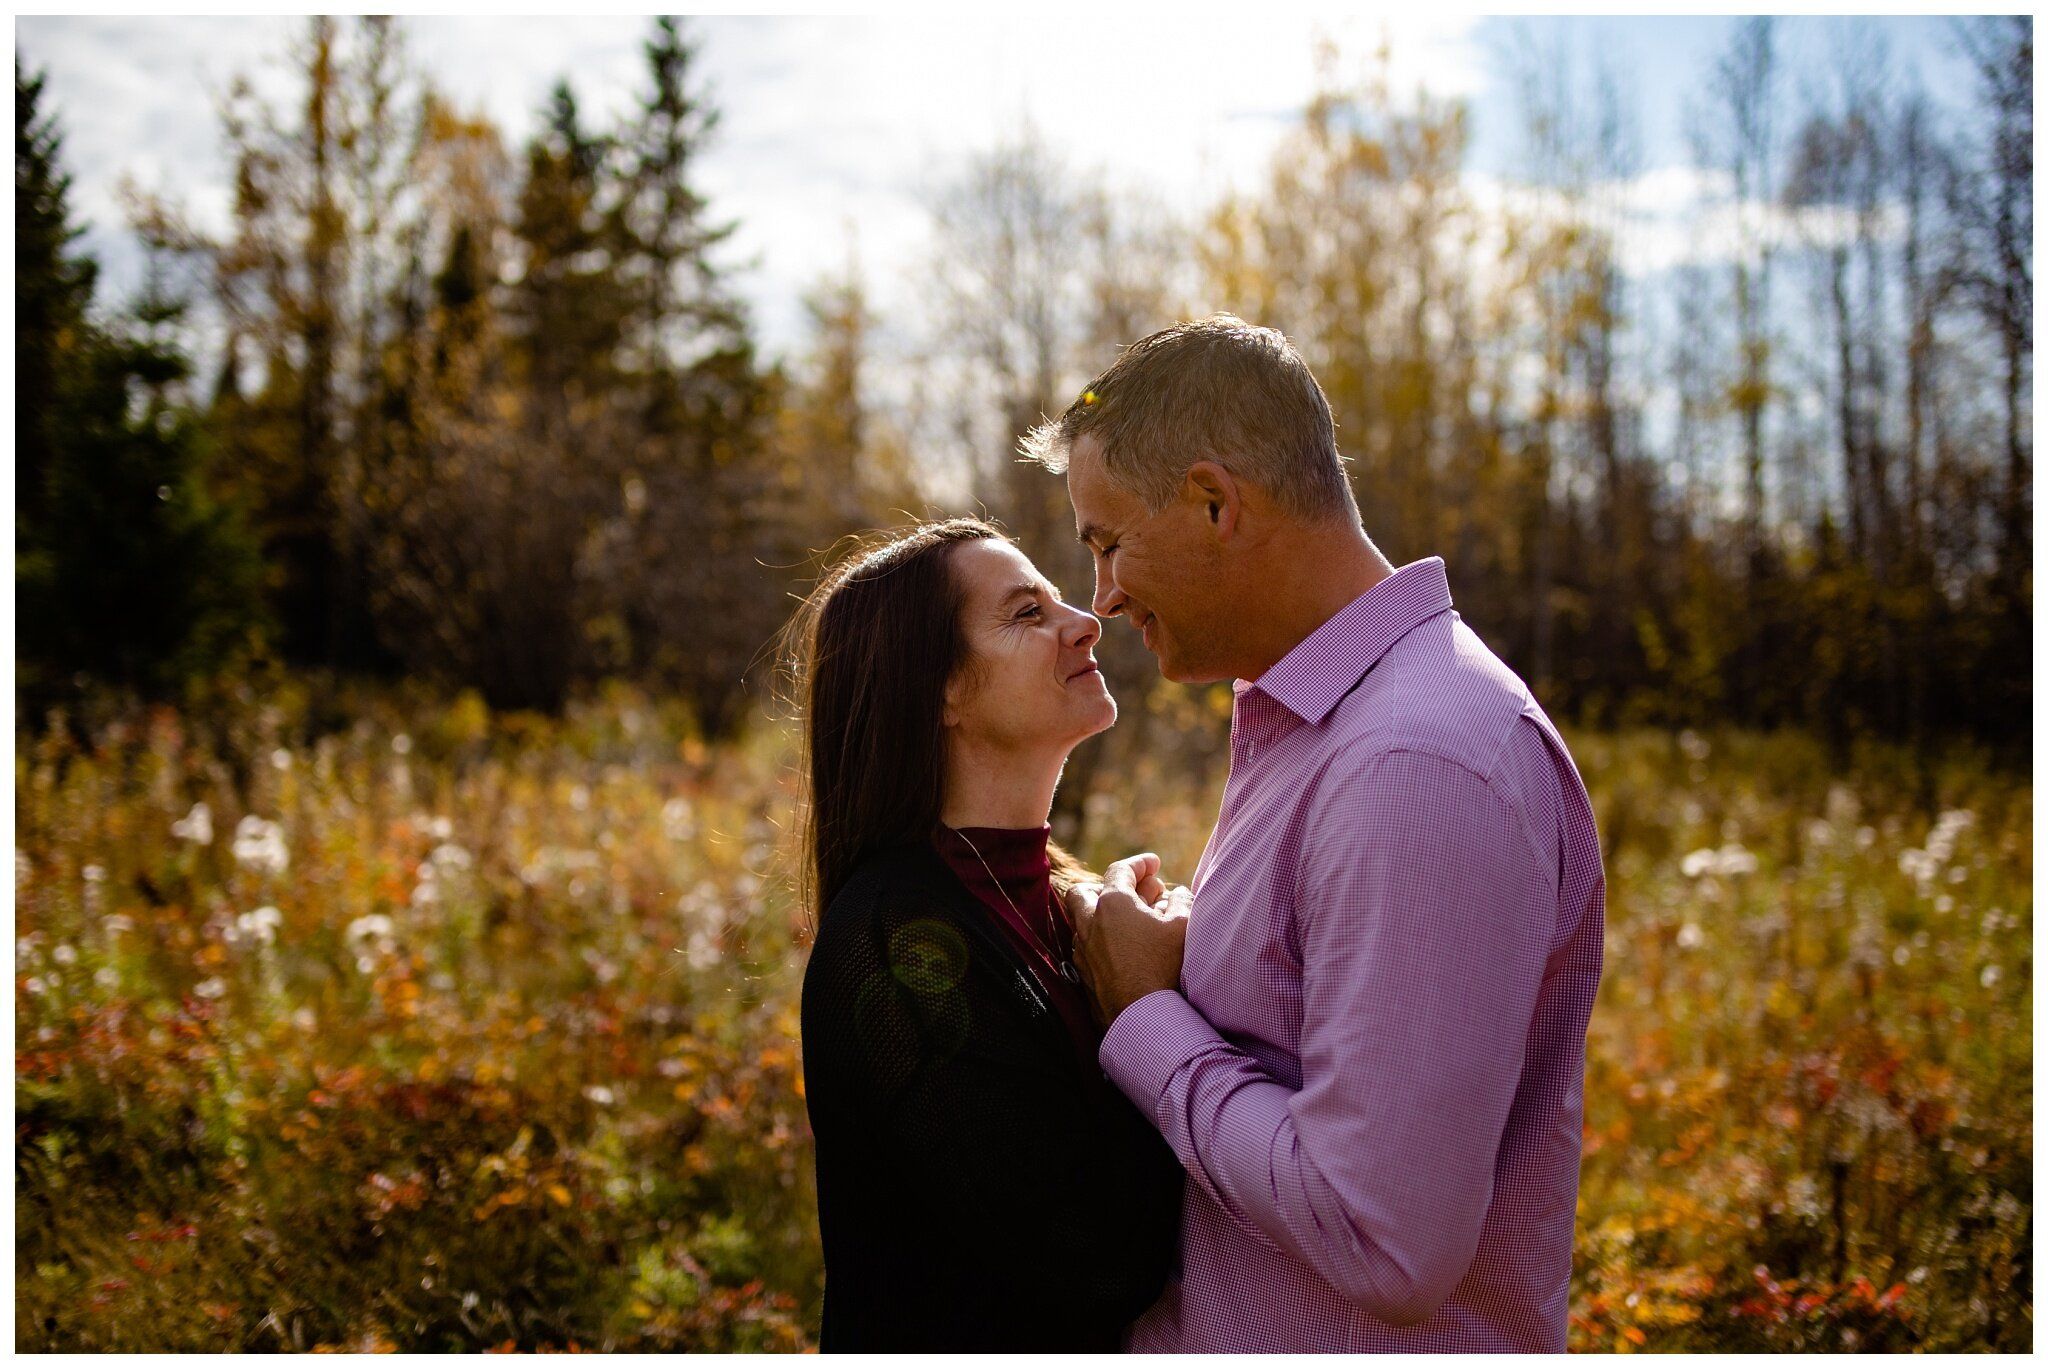 Wagner Natural Area Acheson couples Photographer Alberta  engagement older couple romantic fall photos_0007.jpg